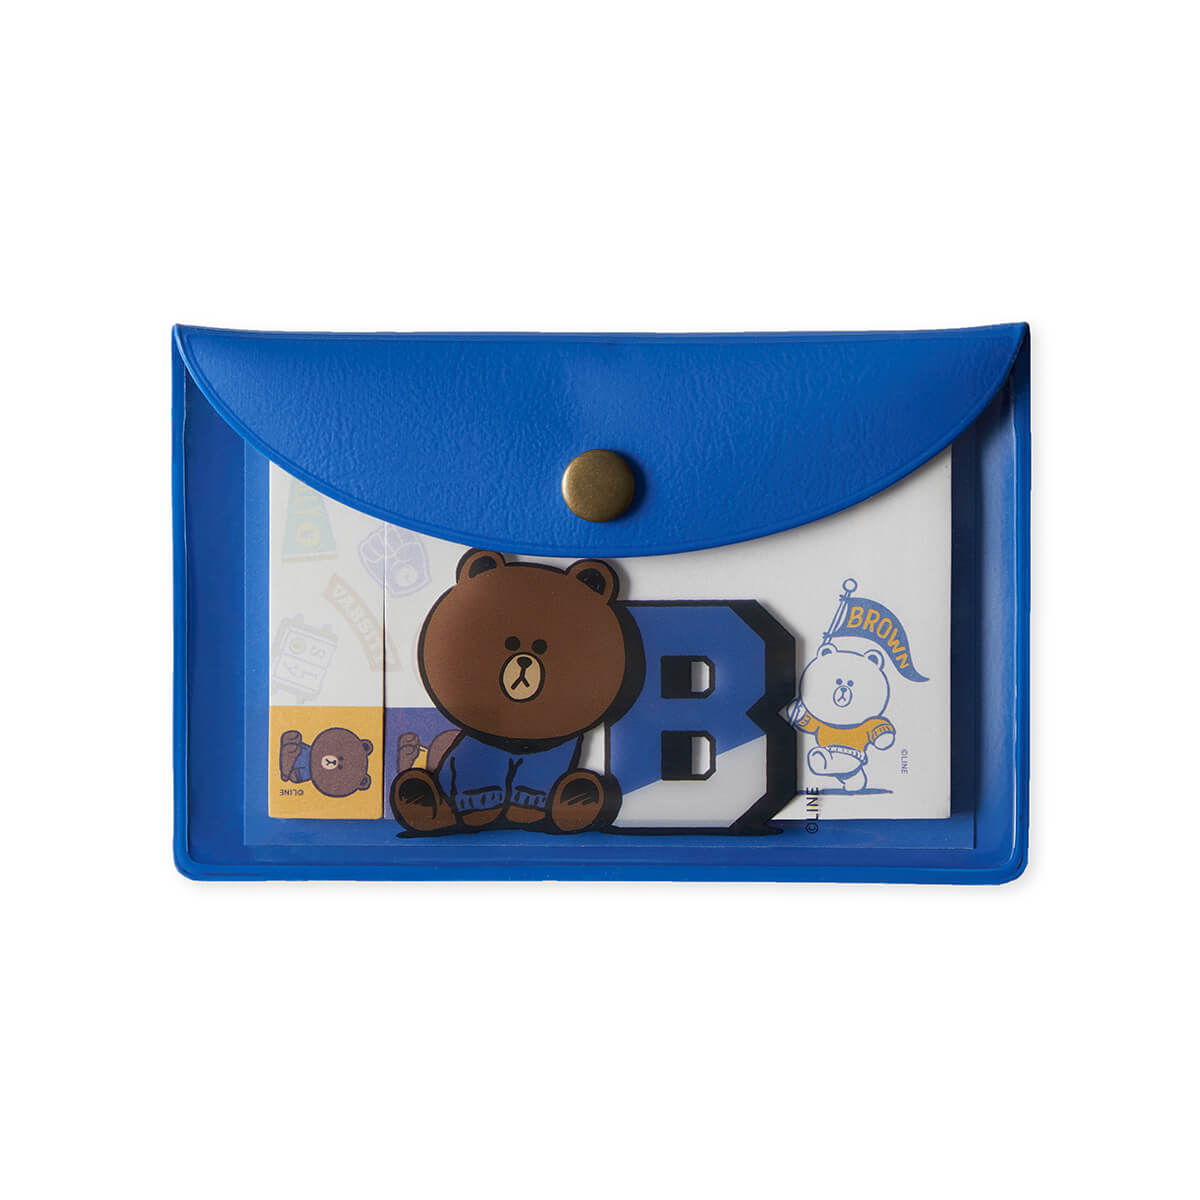 BF BROWN 20 UNIVERSITY Sticky Memo Set